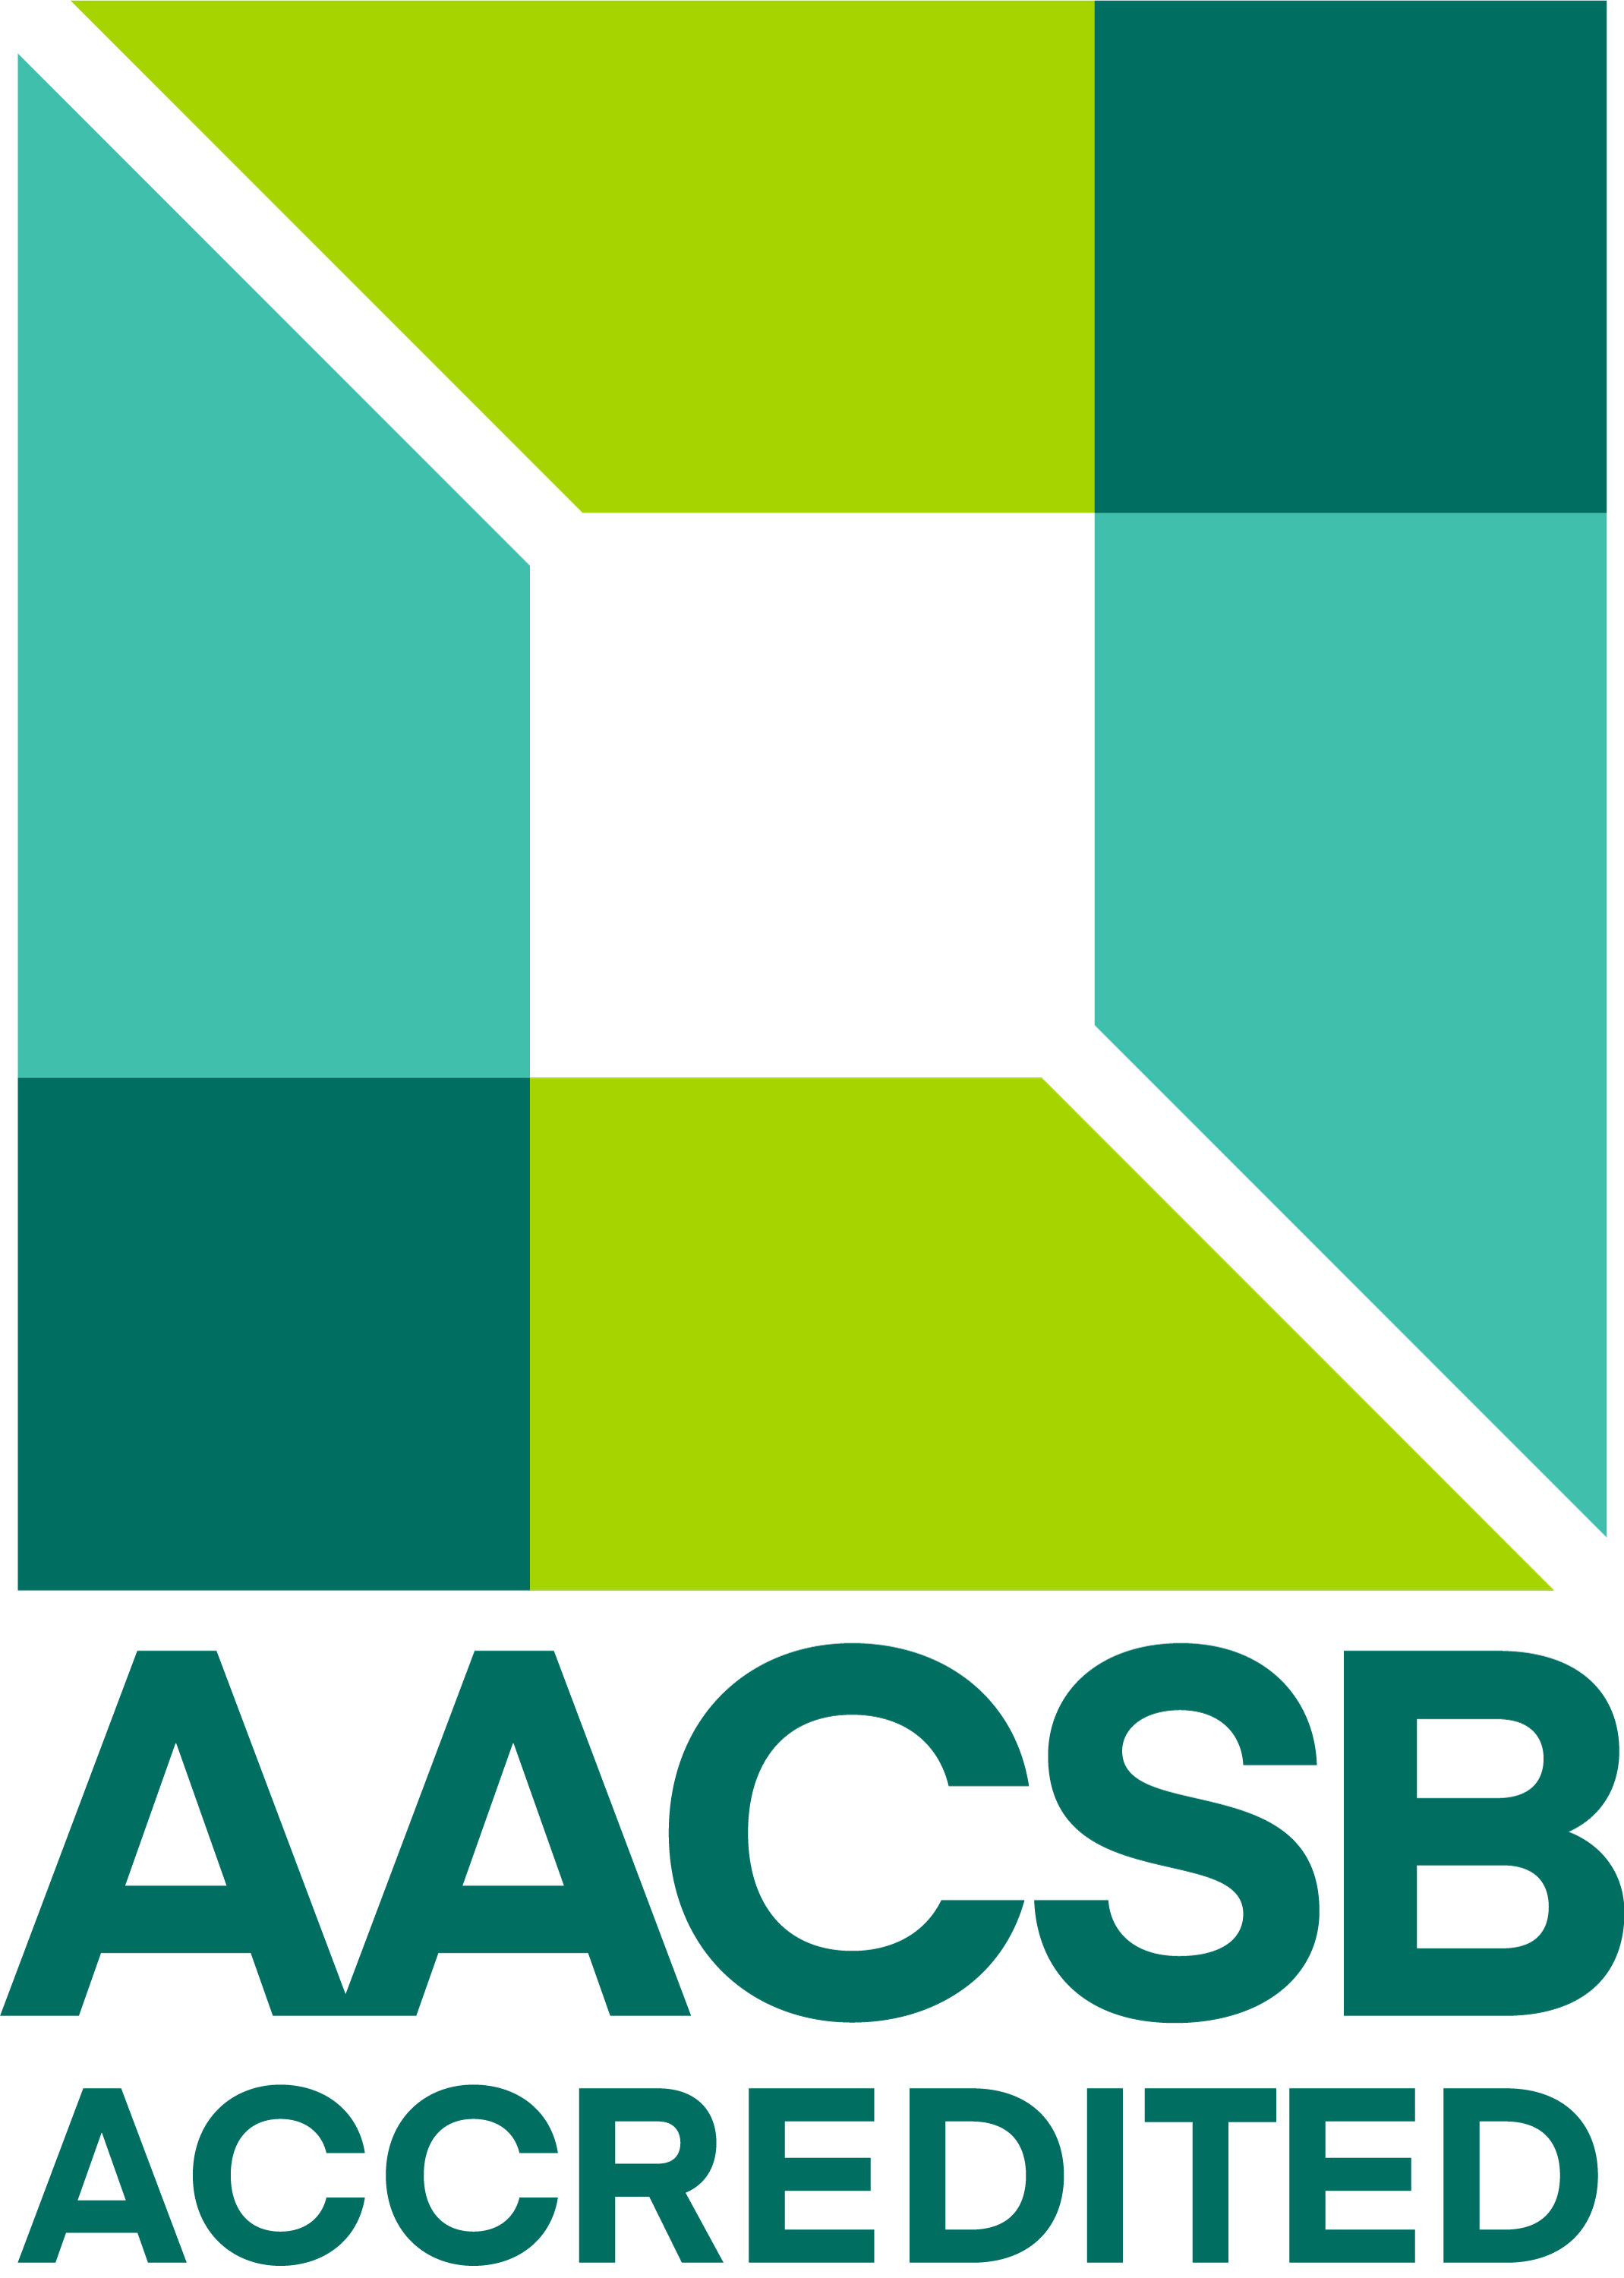 Saint Marys College of California SEBA AACSB Accredited